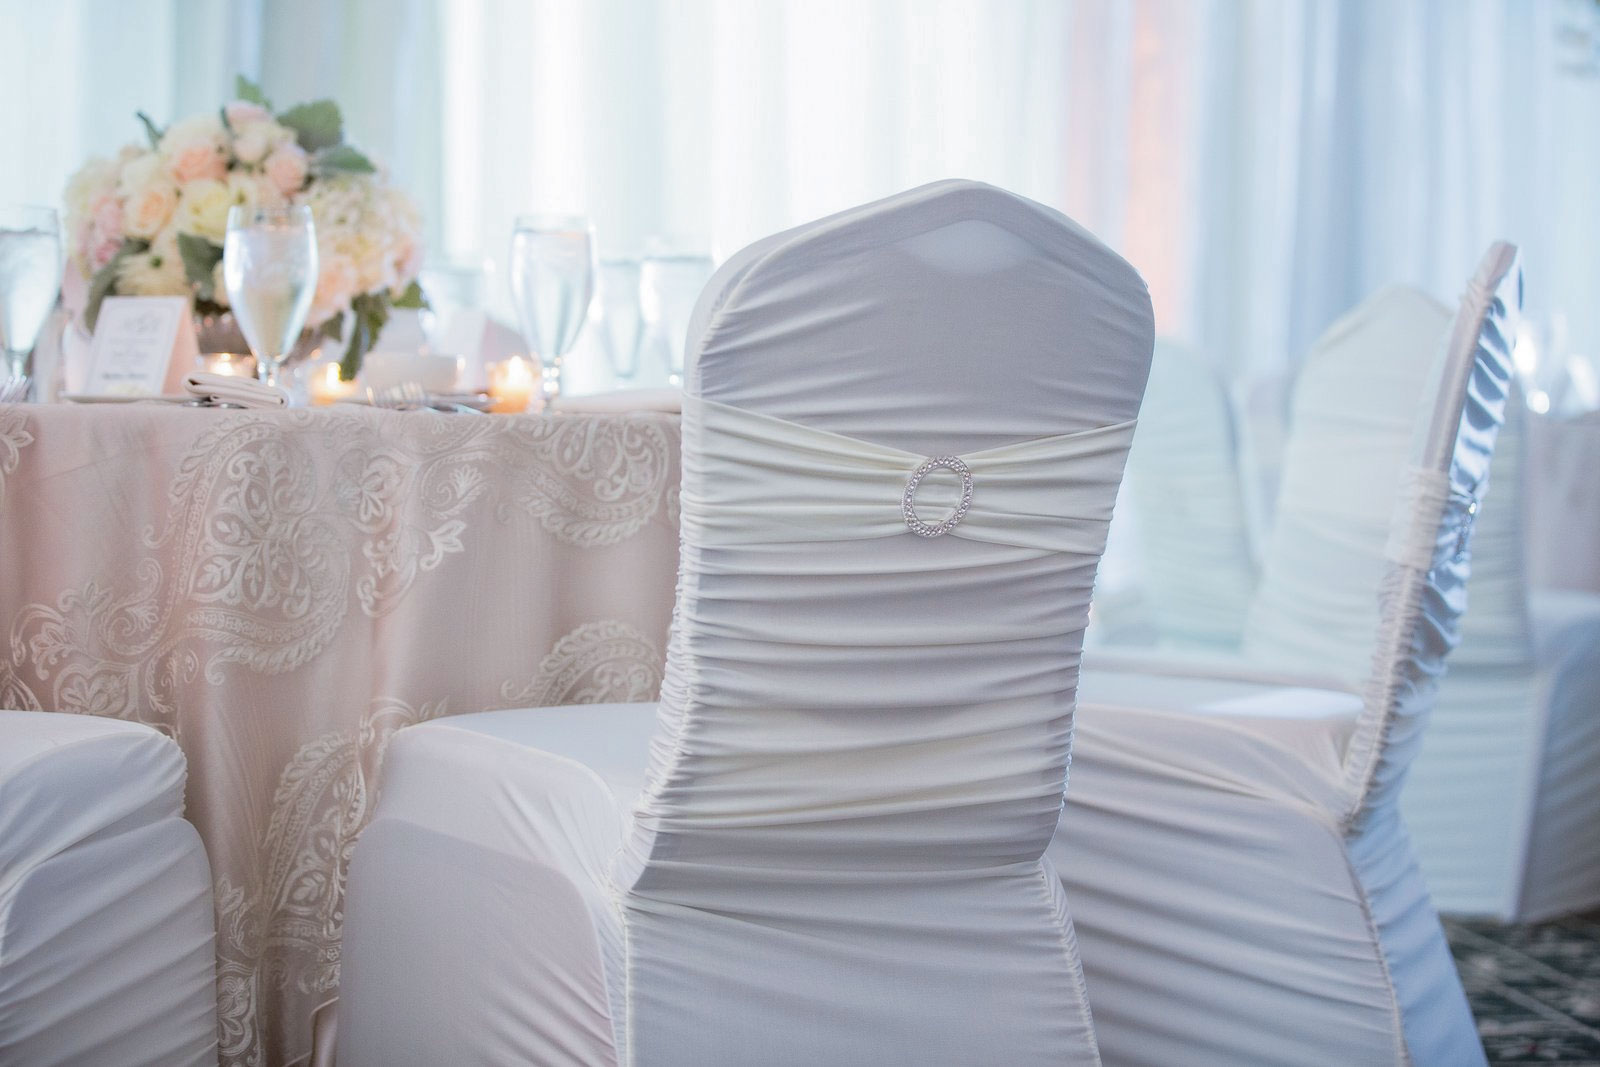 chair cover rentals birmingham al bronx ny linens and for weddings events parties l nique be unique